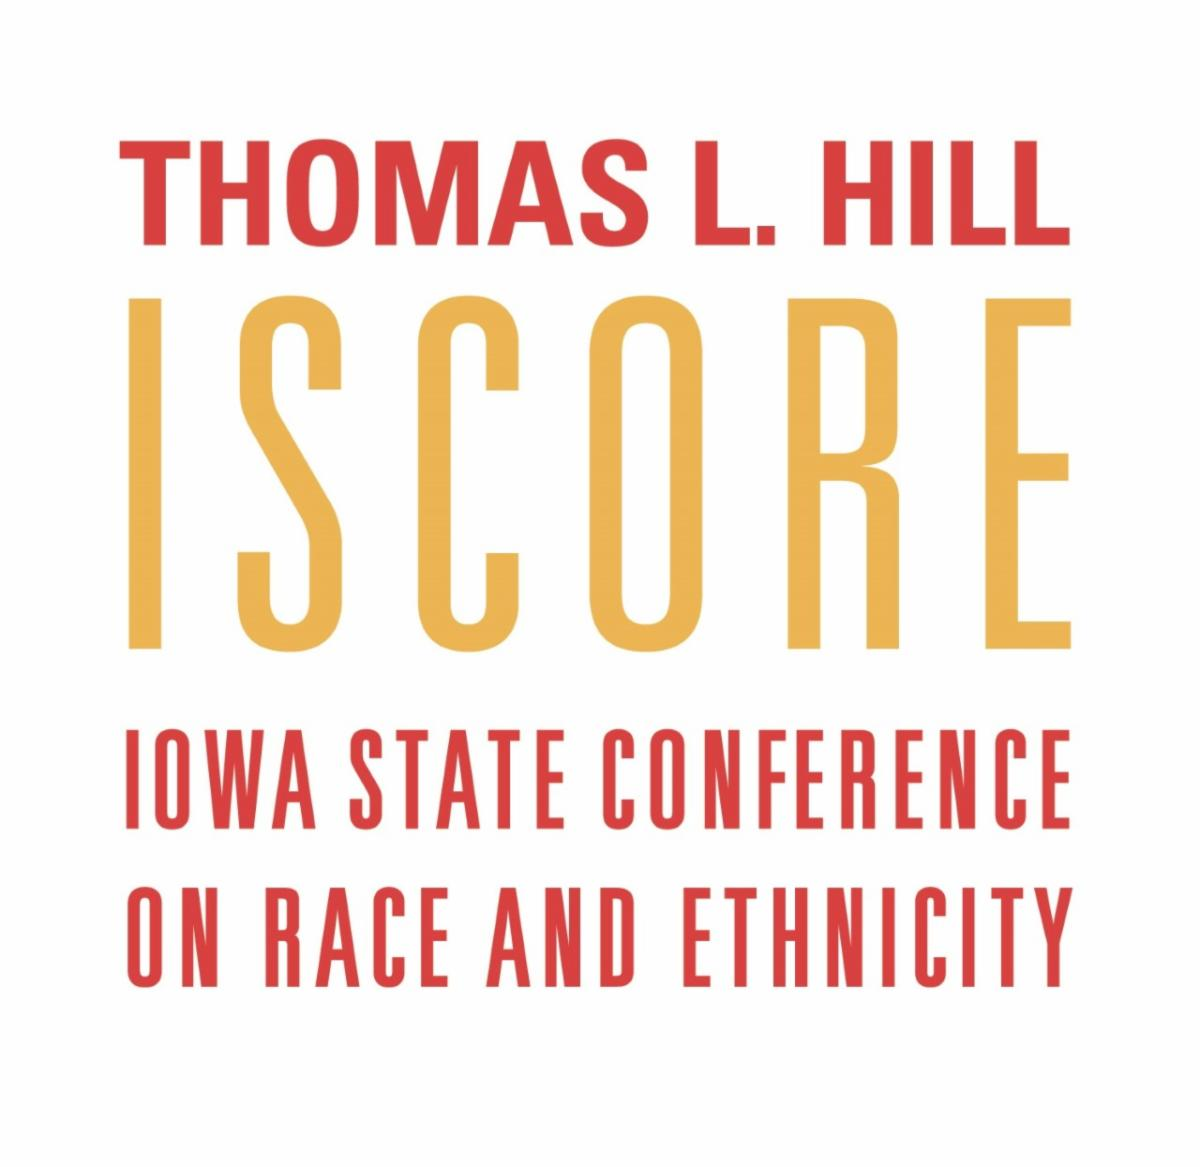 Thomas L Hill ISCORE Iowa State Conference on Race and Ethnicity logo